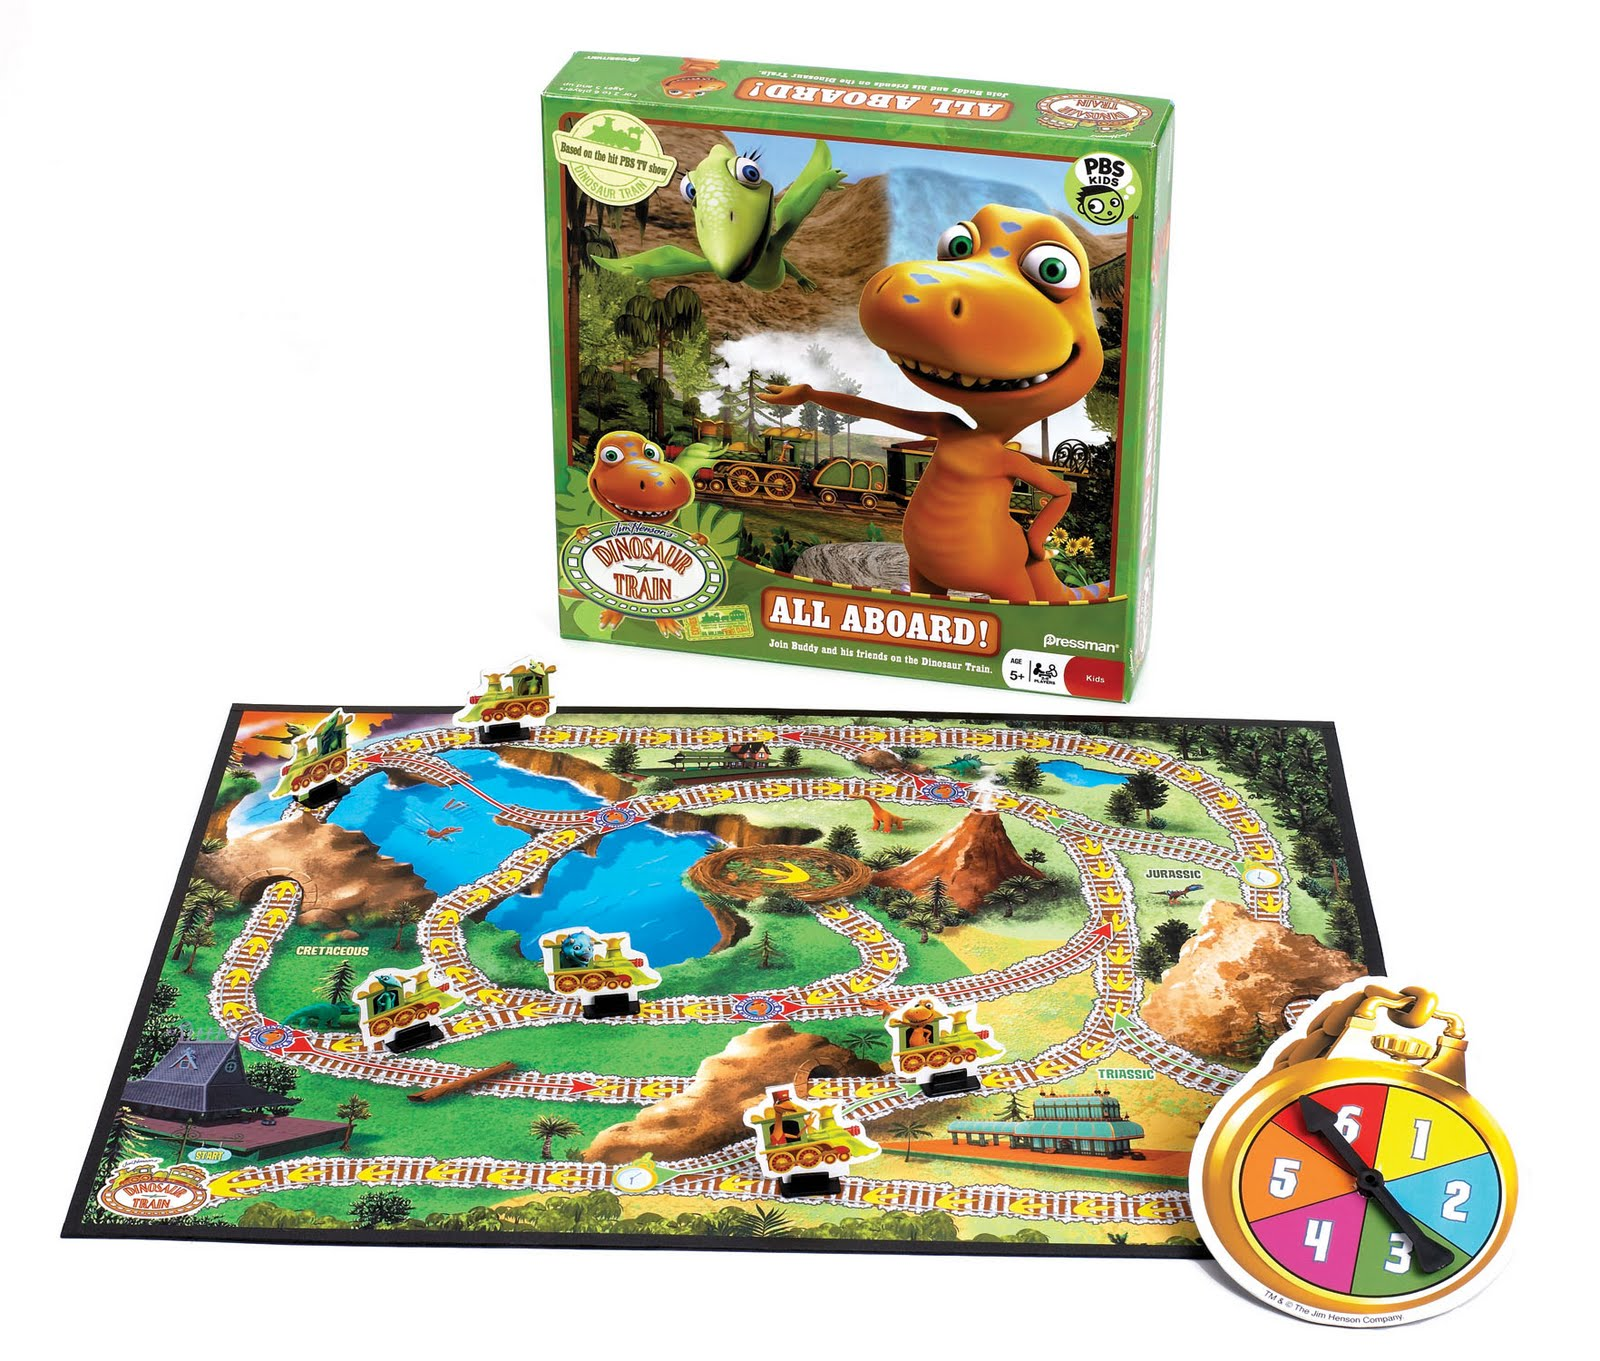 4c2328ce91e DINOSAUR TRAIN ALL ABOARD GAME FROM PRESSMAN TOY CORP  Join Buddy and his  friends on the DINOSAUR TRAIN! Choose a character – Buddy, Tiny, Shiny, Don,  Cory, ...